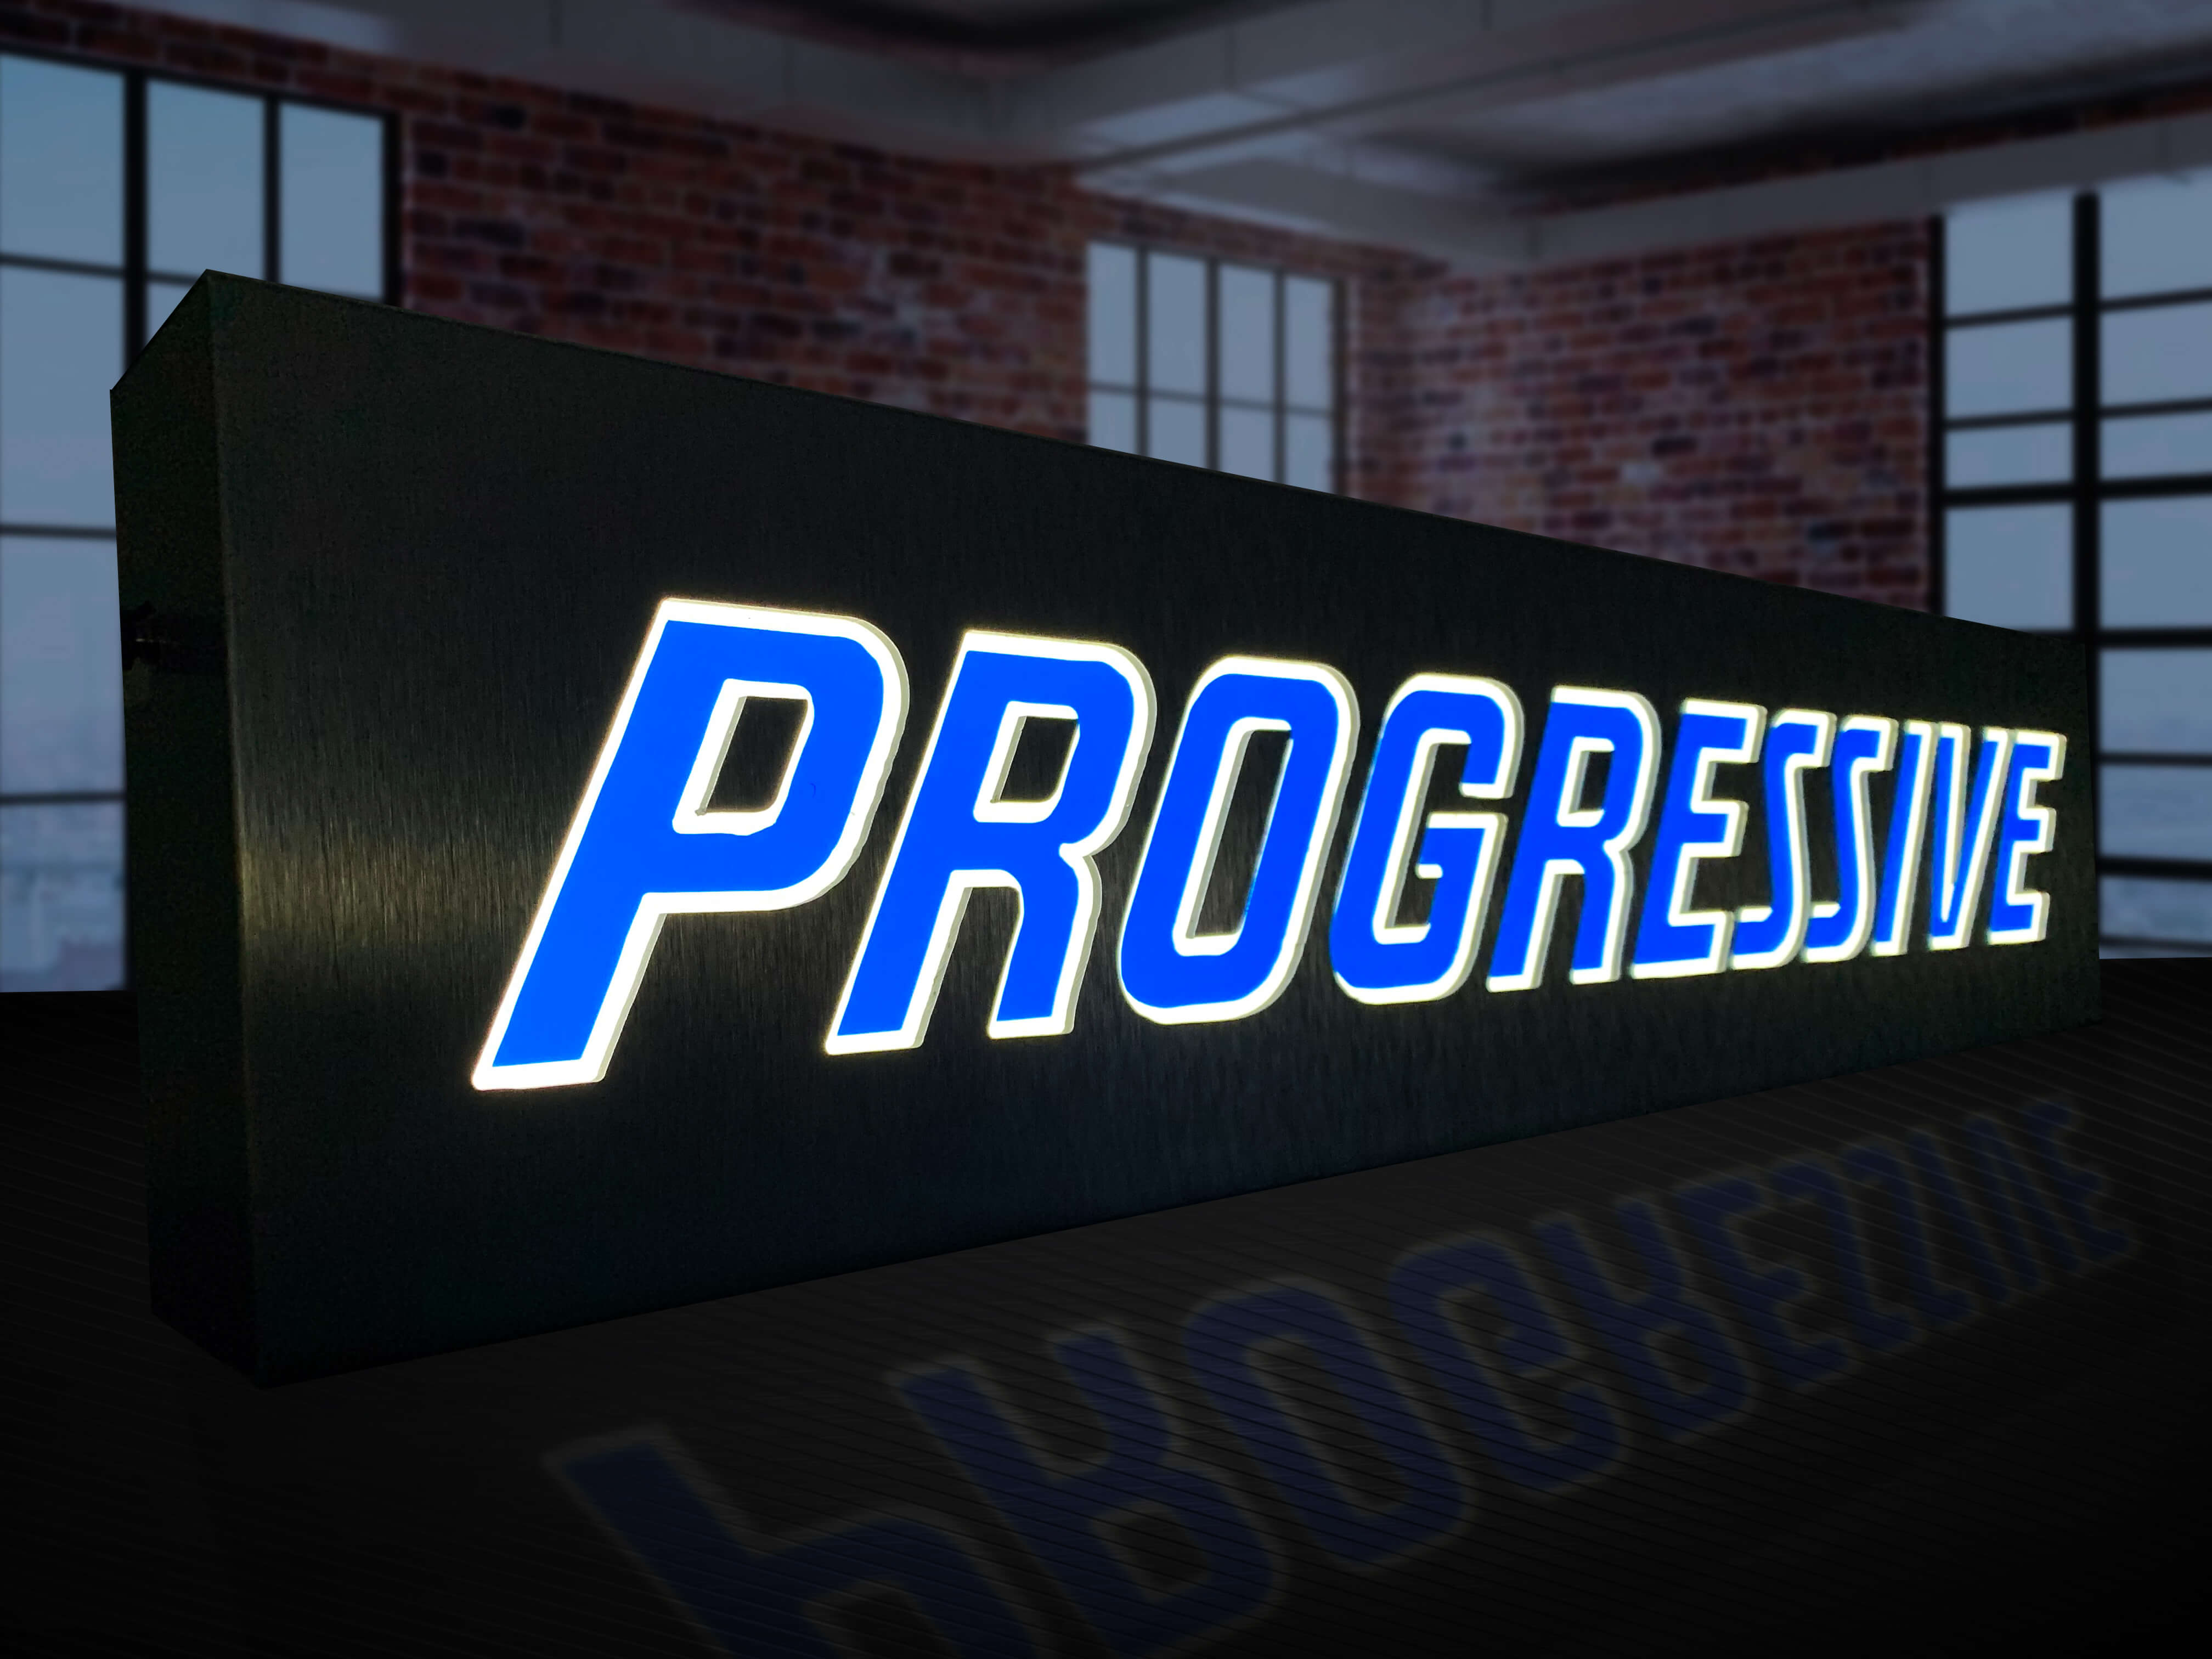 One of several indoor illuminated sign fabricated with aluminum and vinyl for Progressive agencies to display in their spaces.